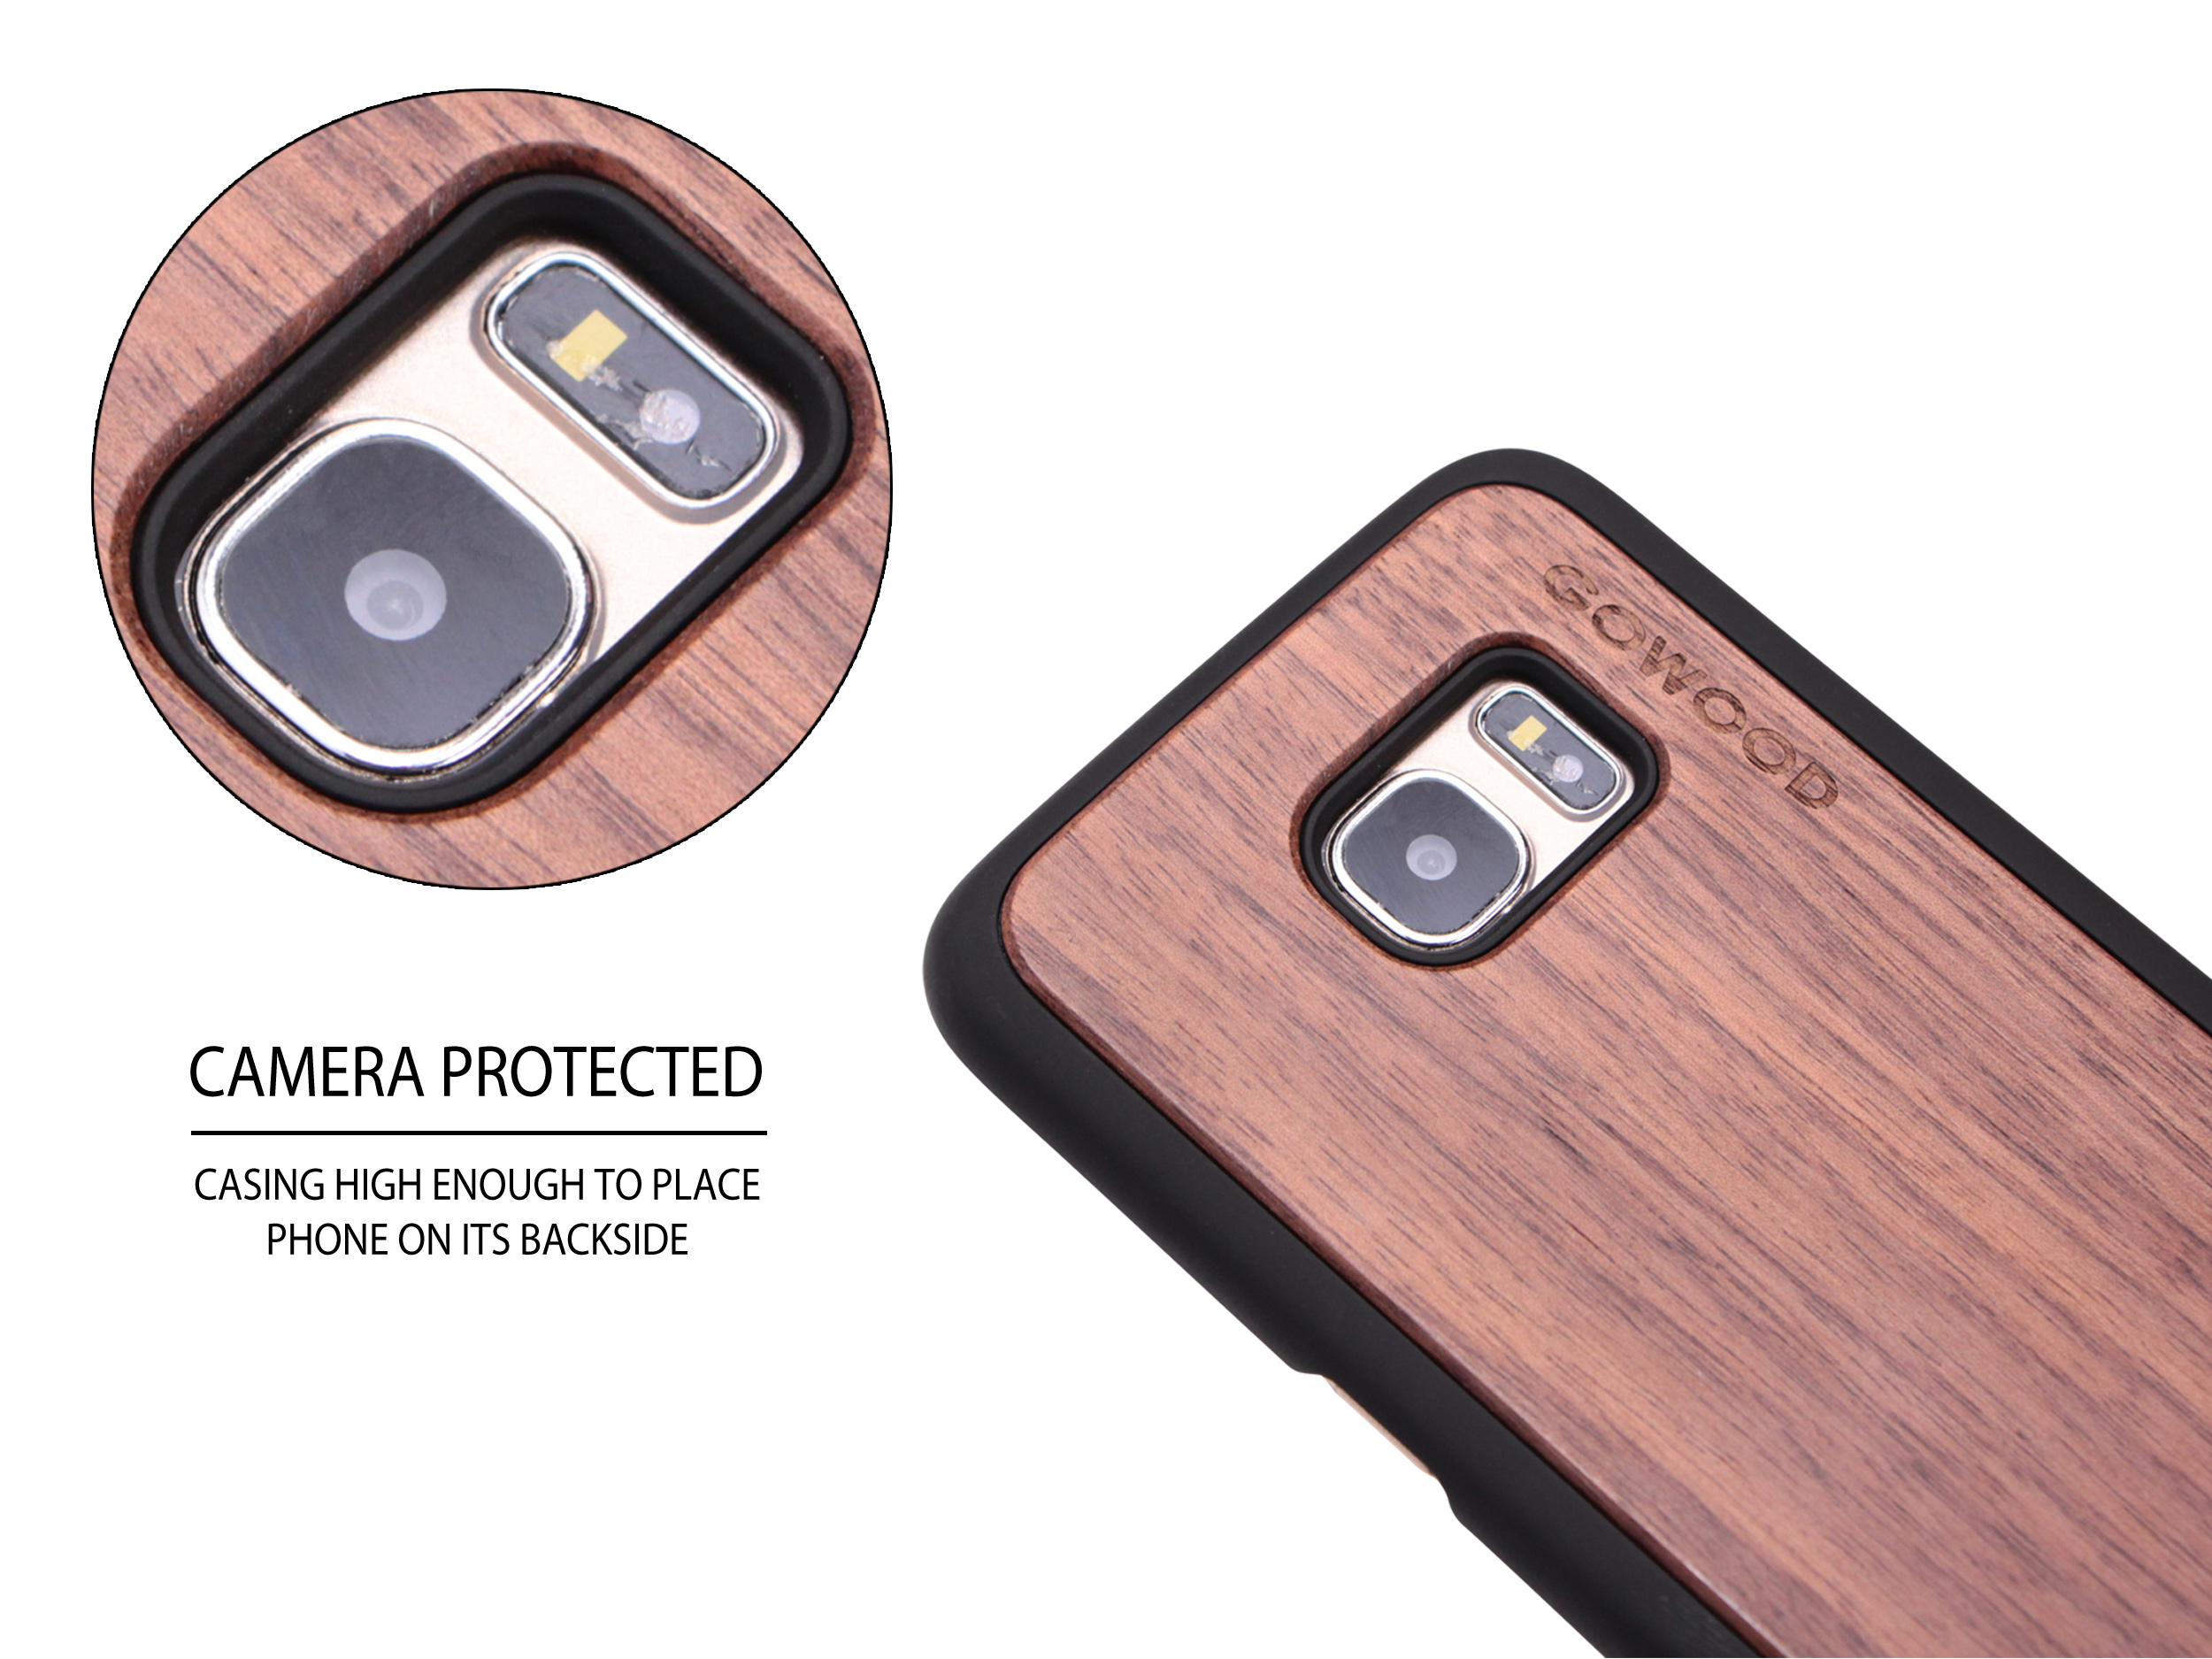 Samsung Galaxy S7 Edge wood case walnut camera